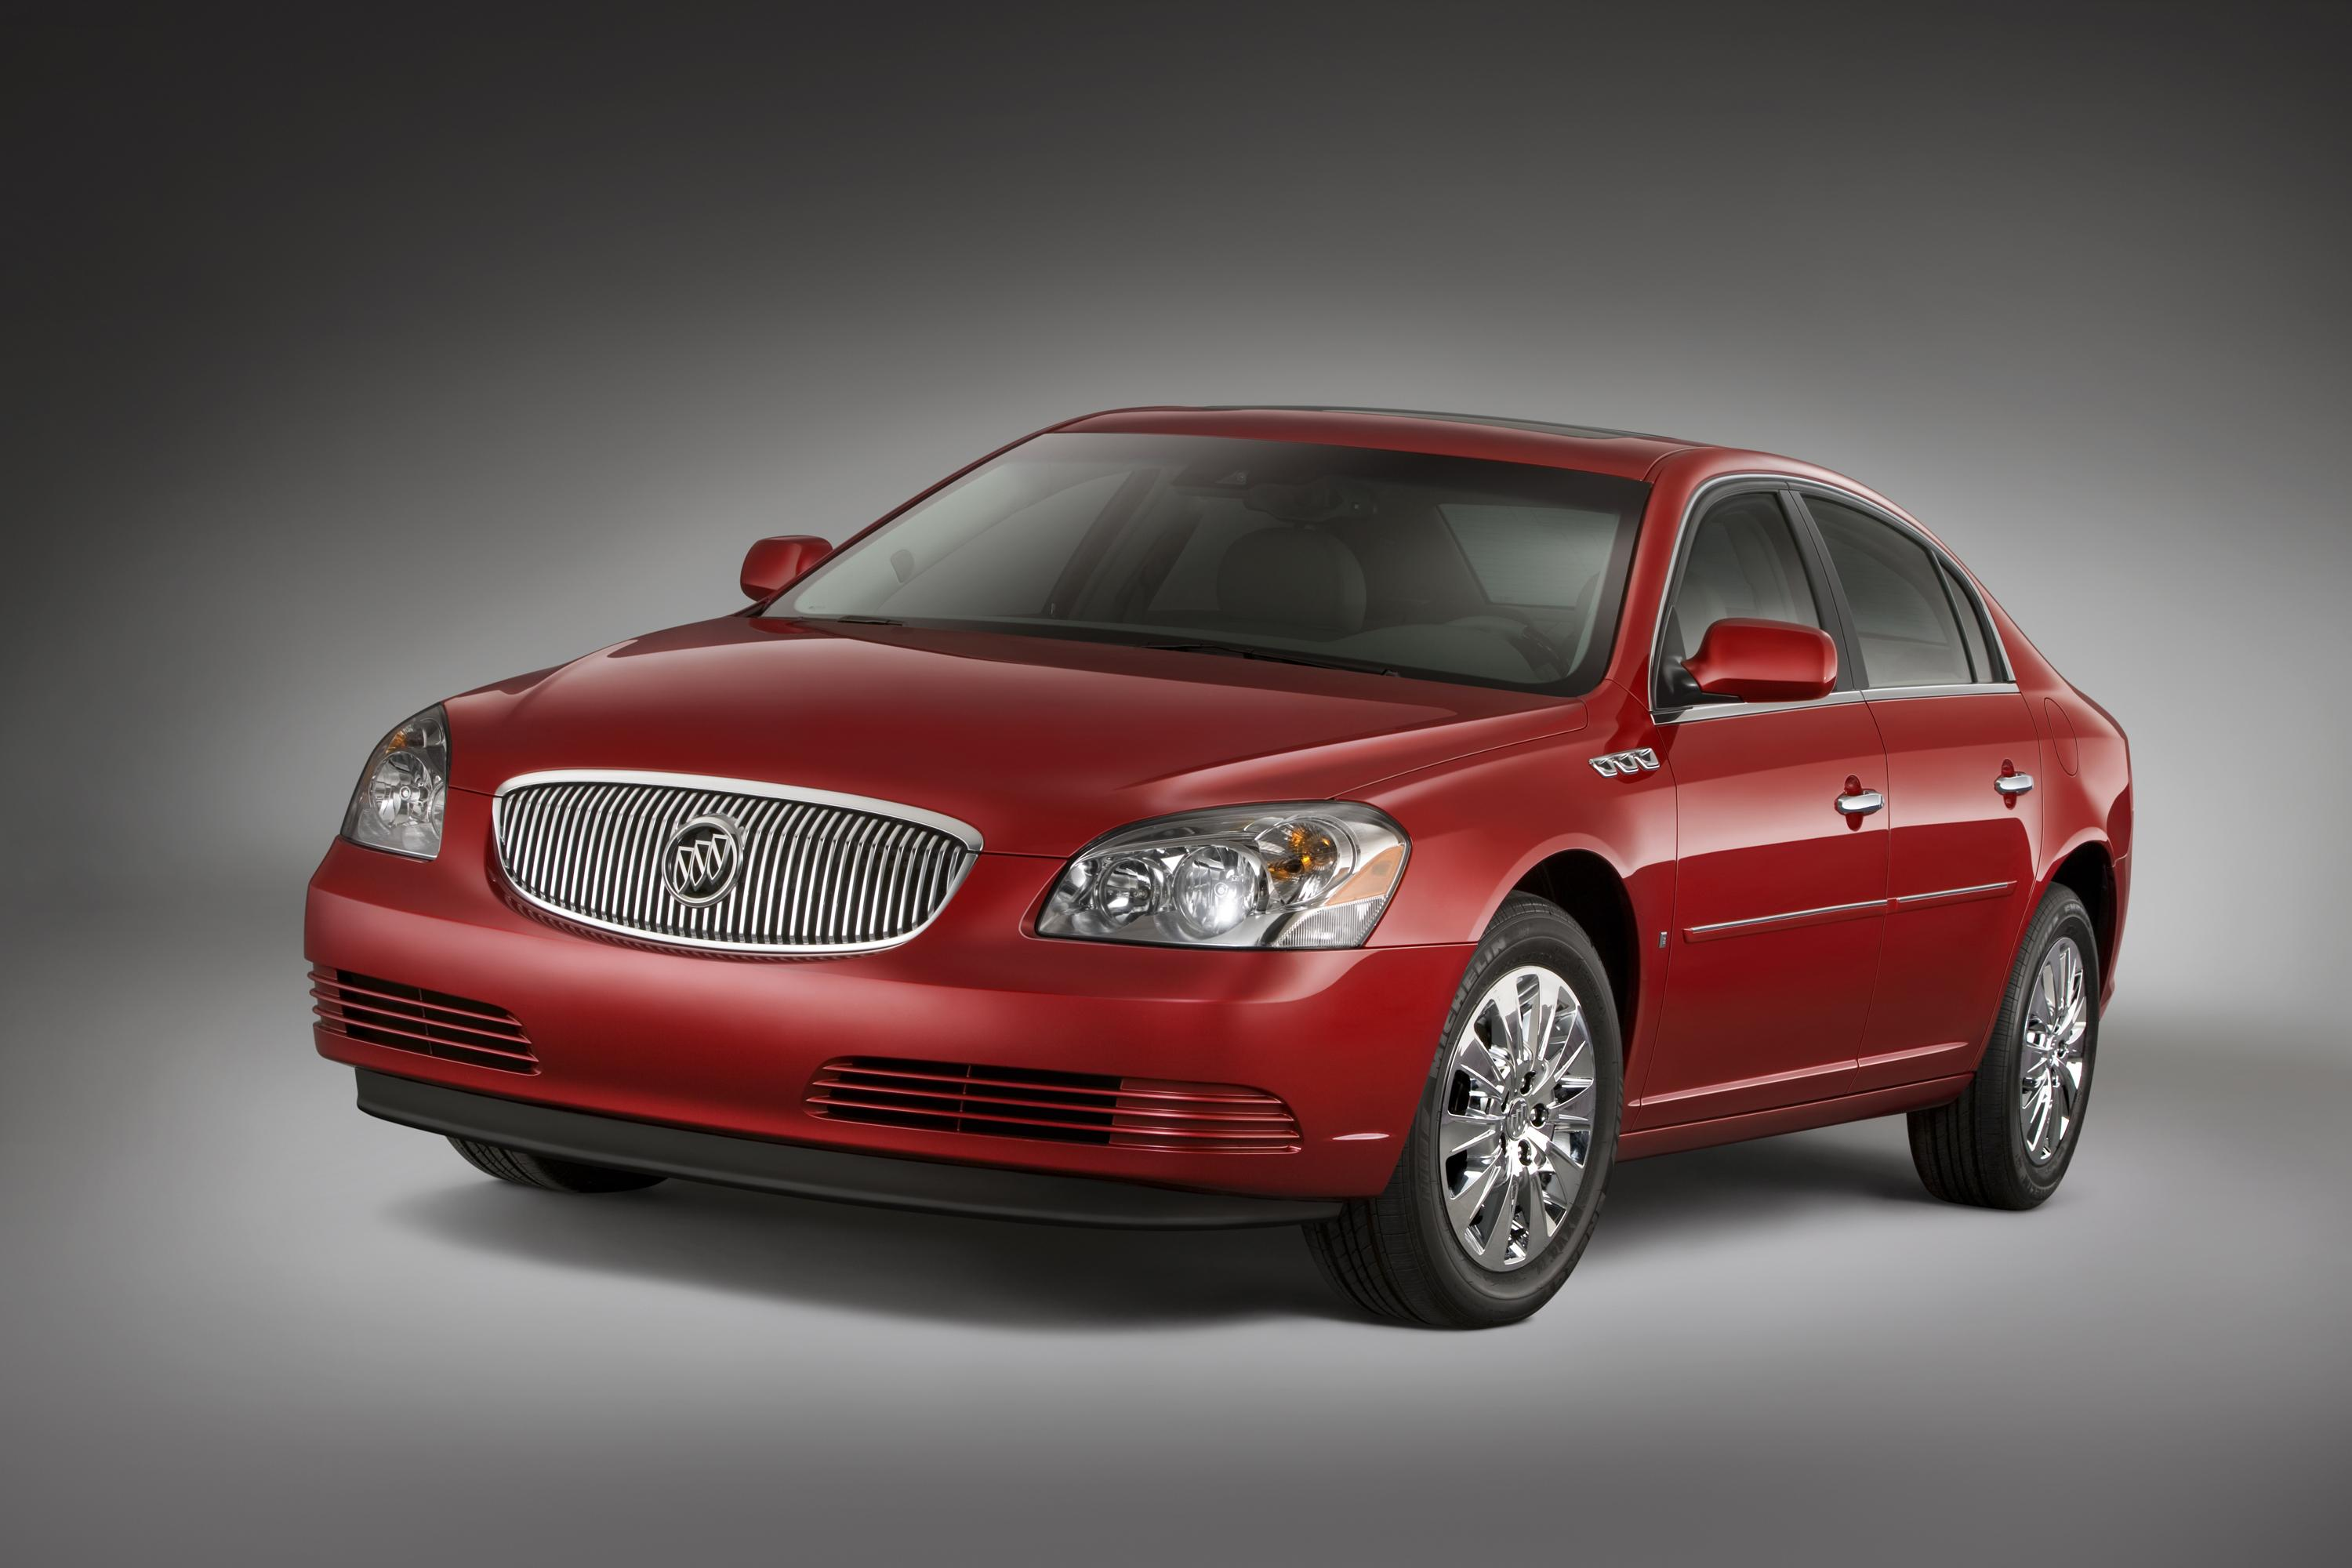 2008 buick lucerne cxl special edition review gallery. Black Bedroom Furniture Sets. Home Design Ideas